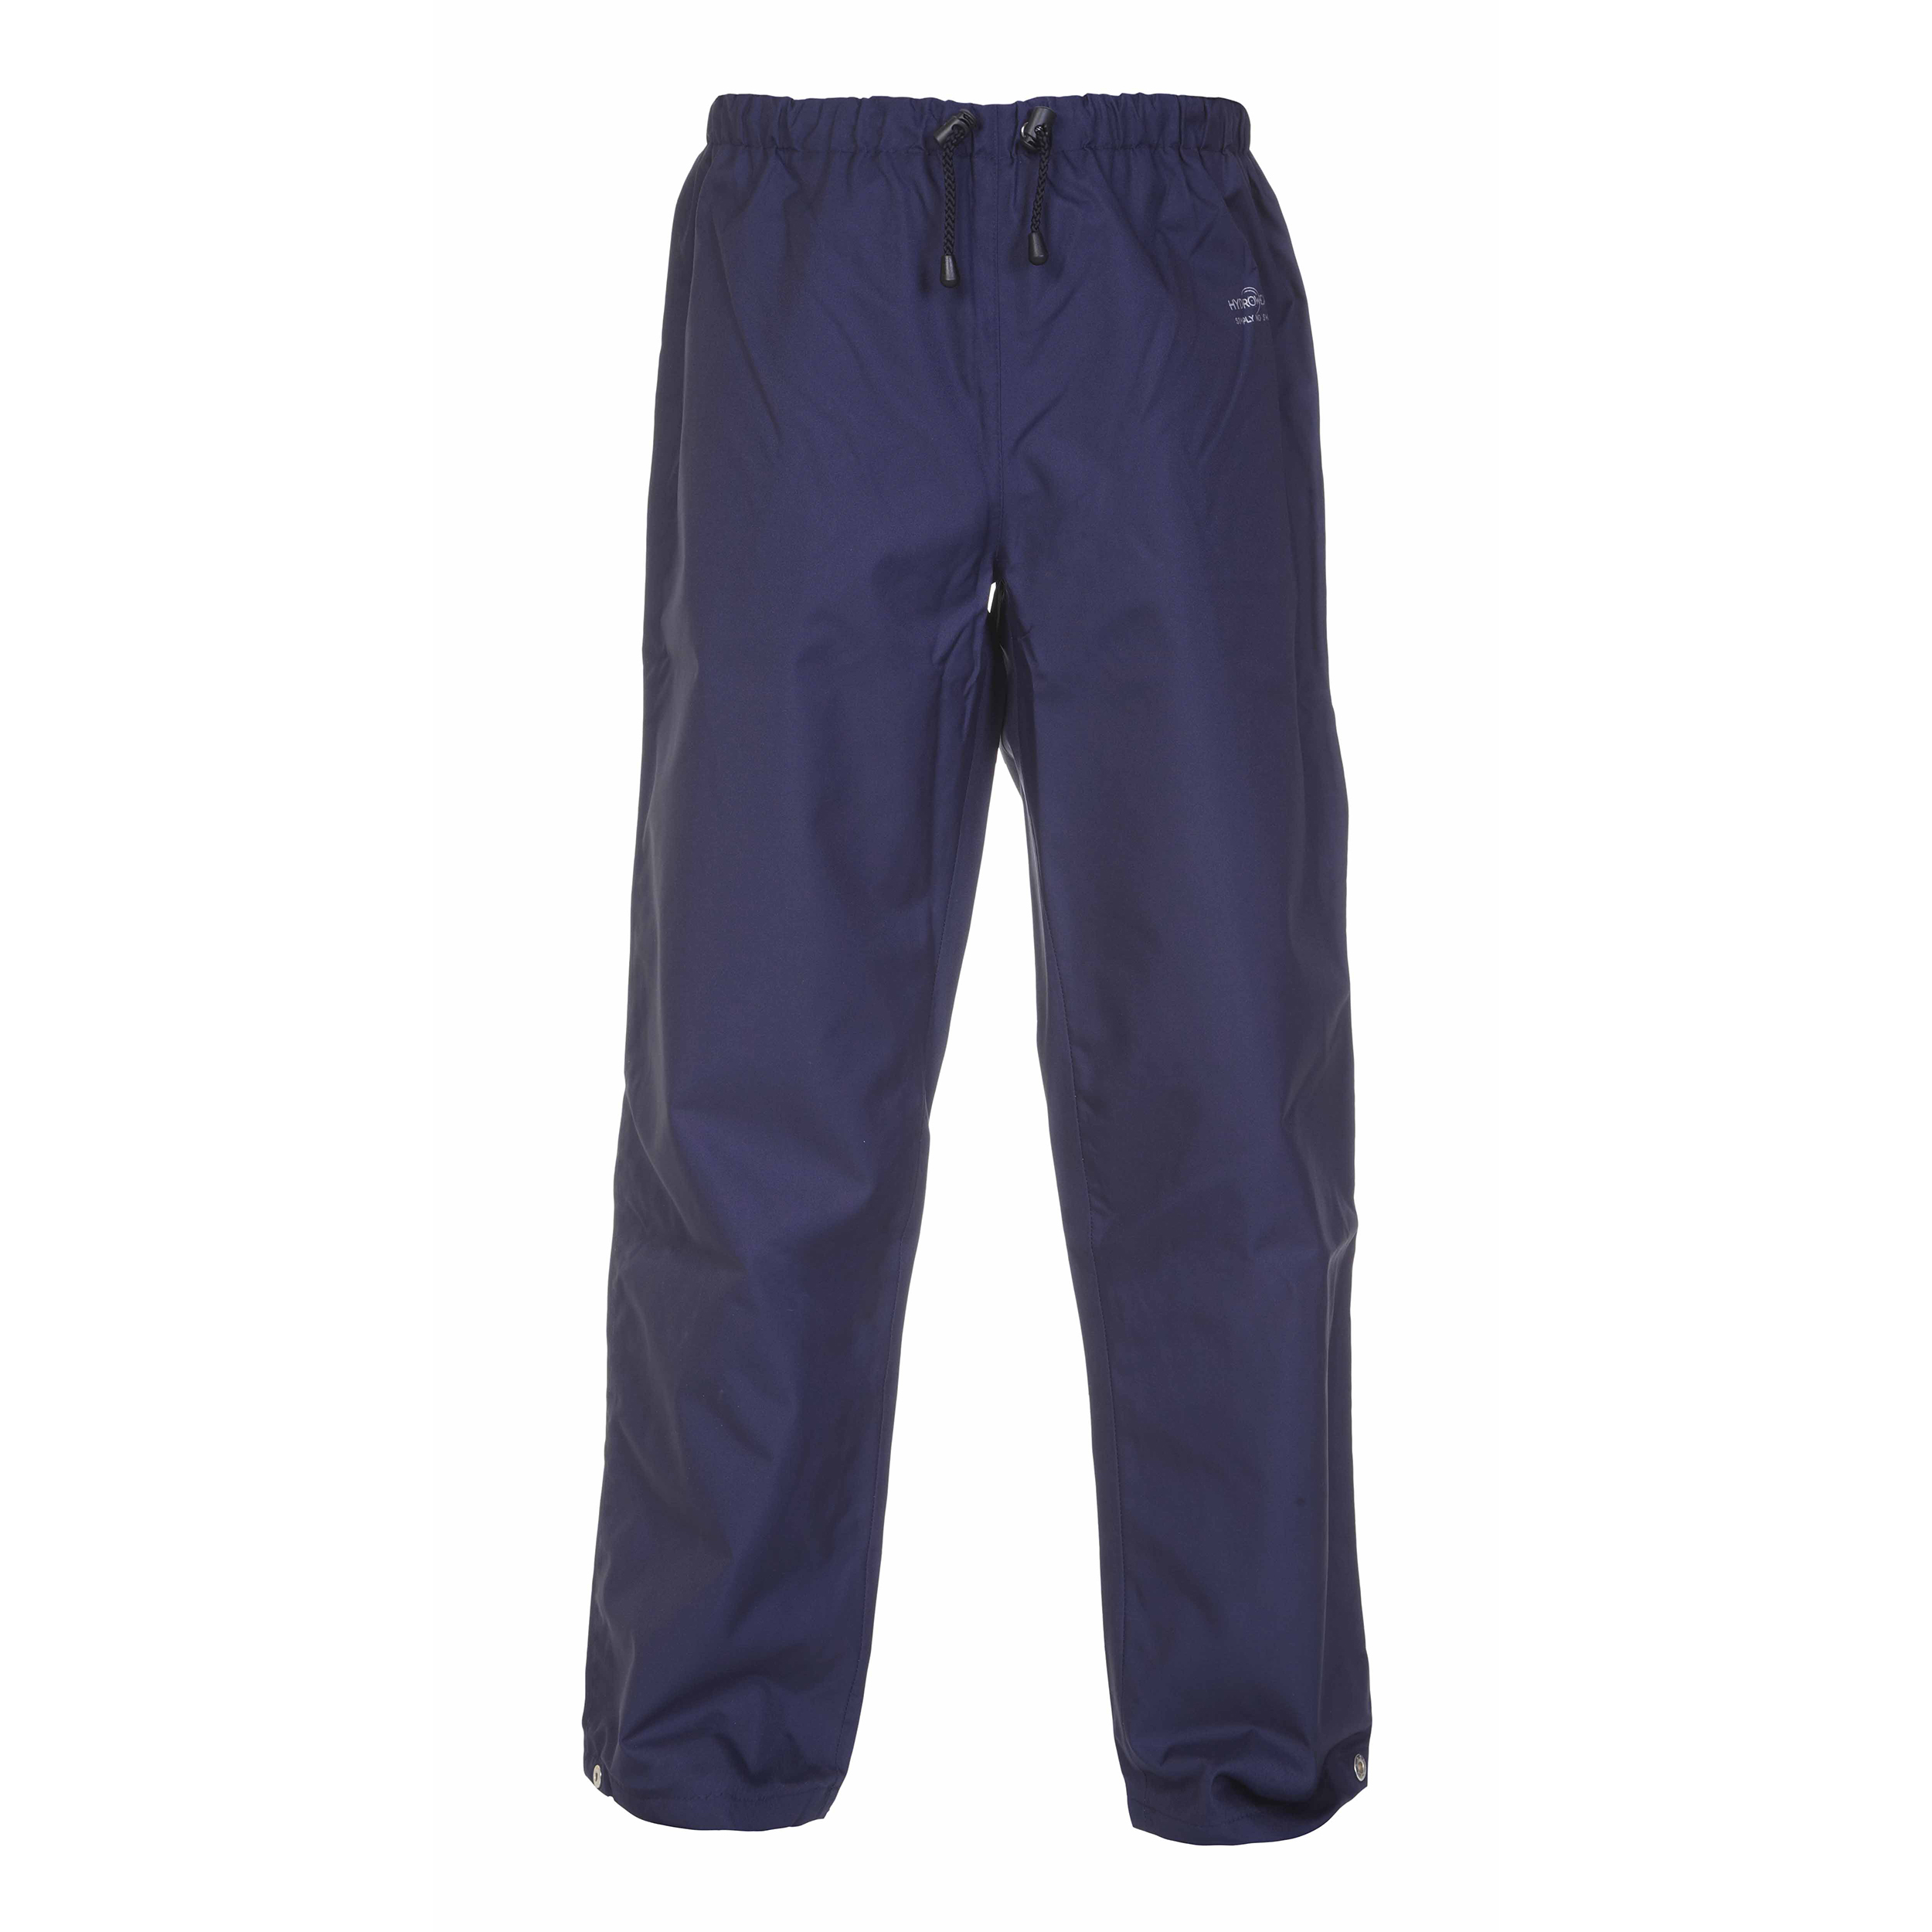 Mens slacks or trousers or shorts Hydowear Utrecht SNS Waterproof Trousers Meduim Navy Ref HYD072350NM *Up to 3 Day Leadtime*